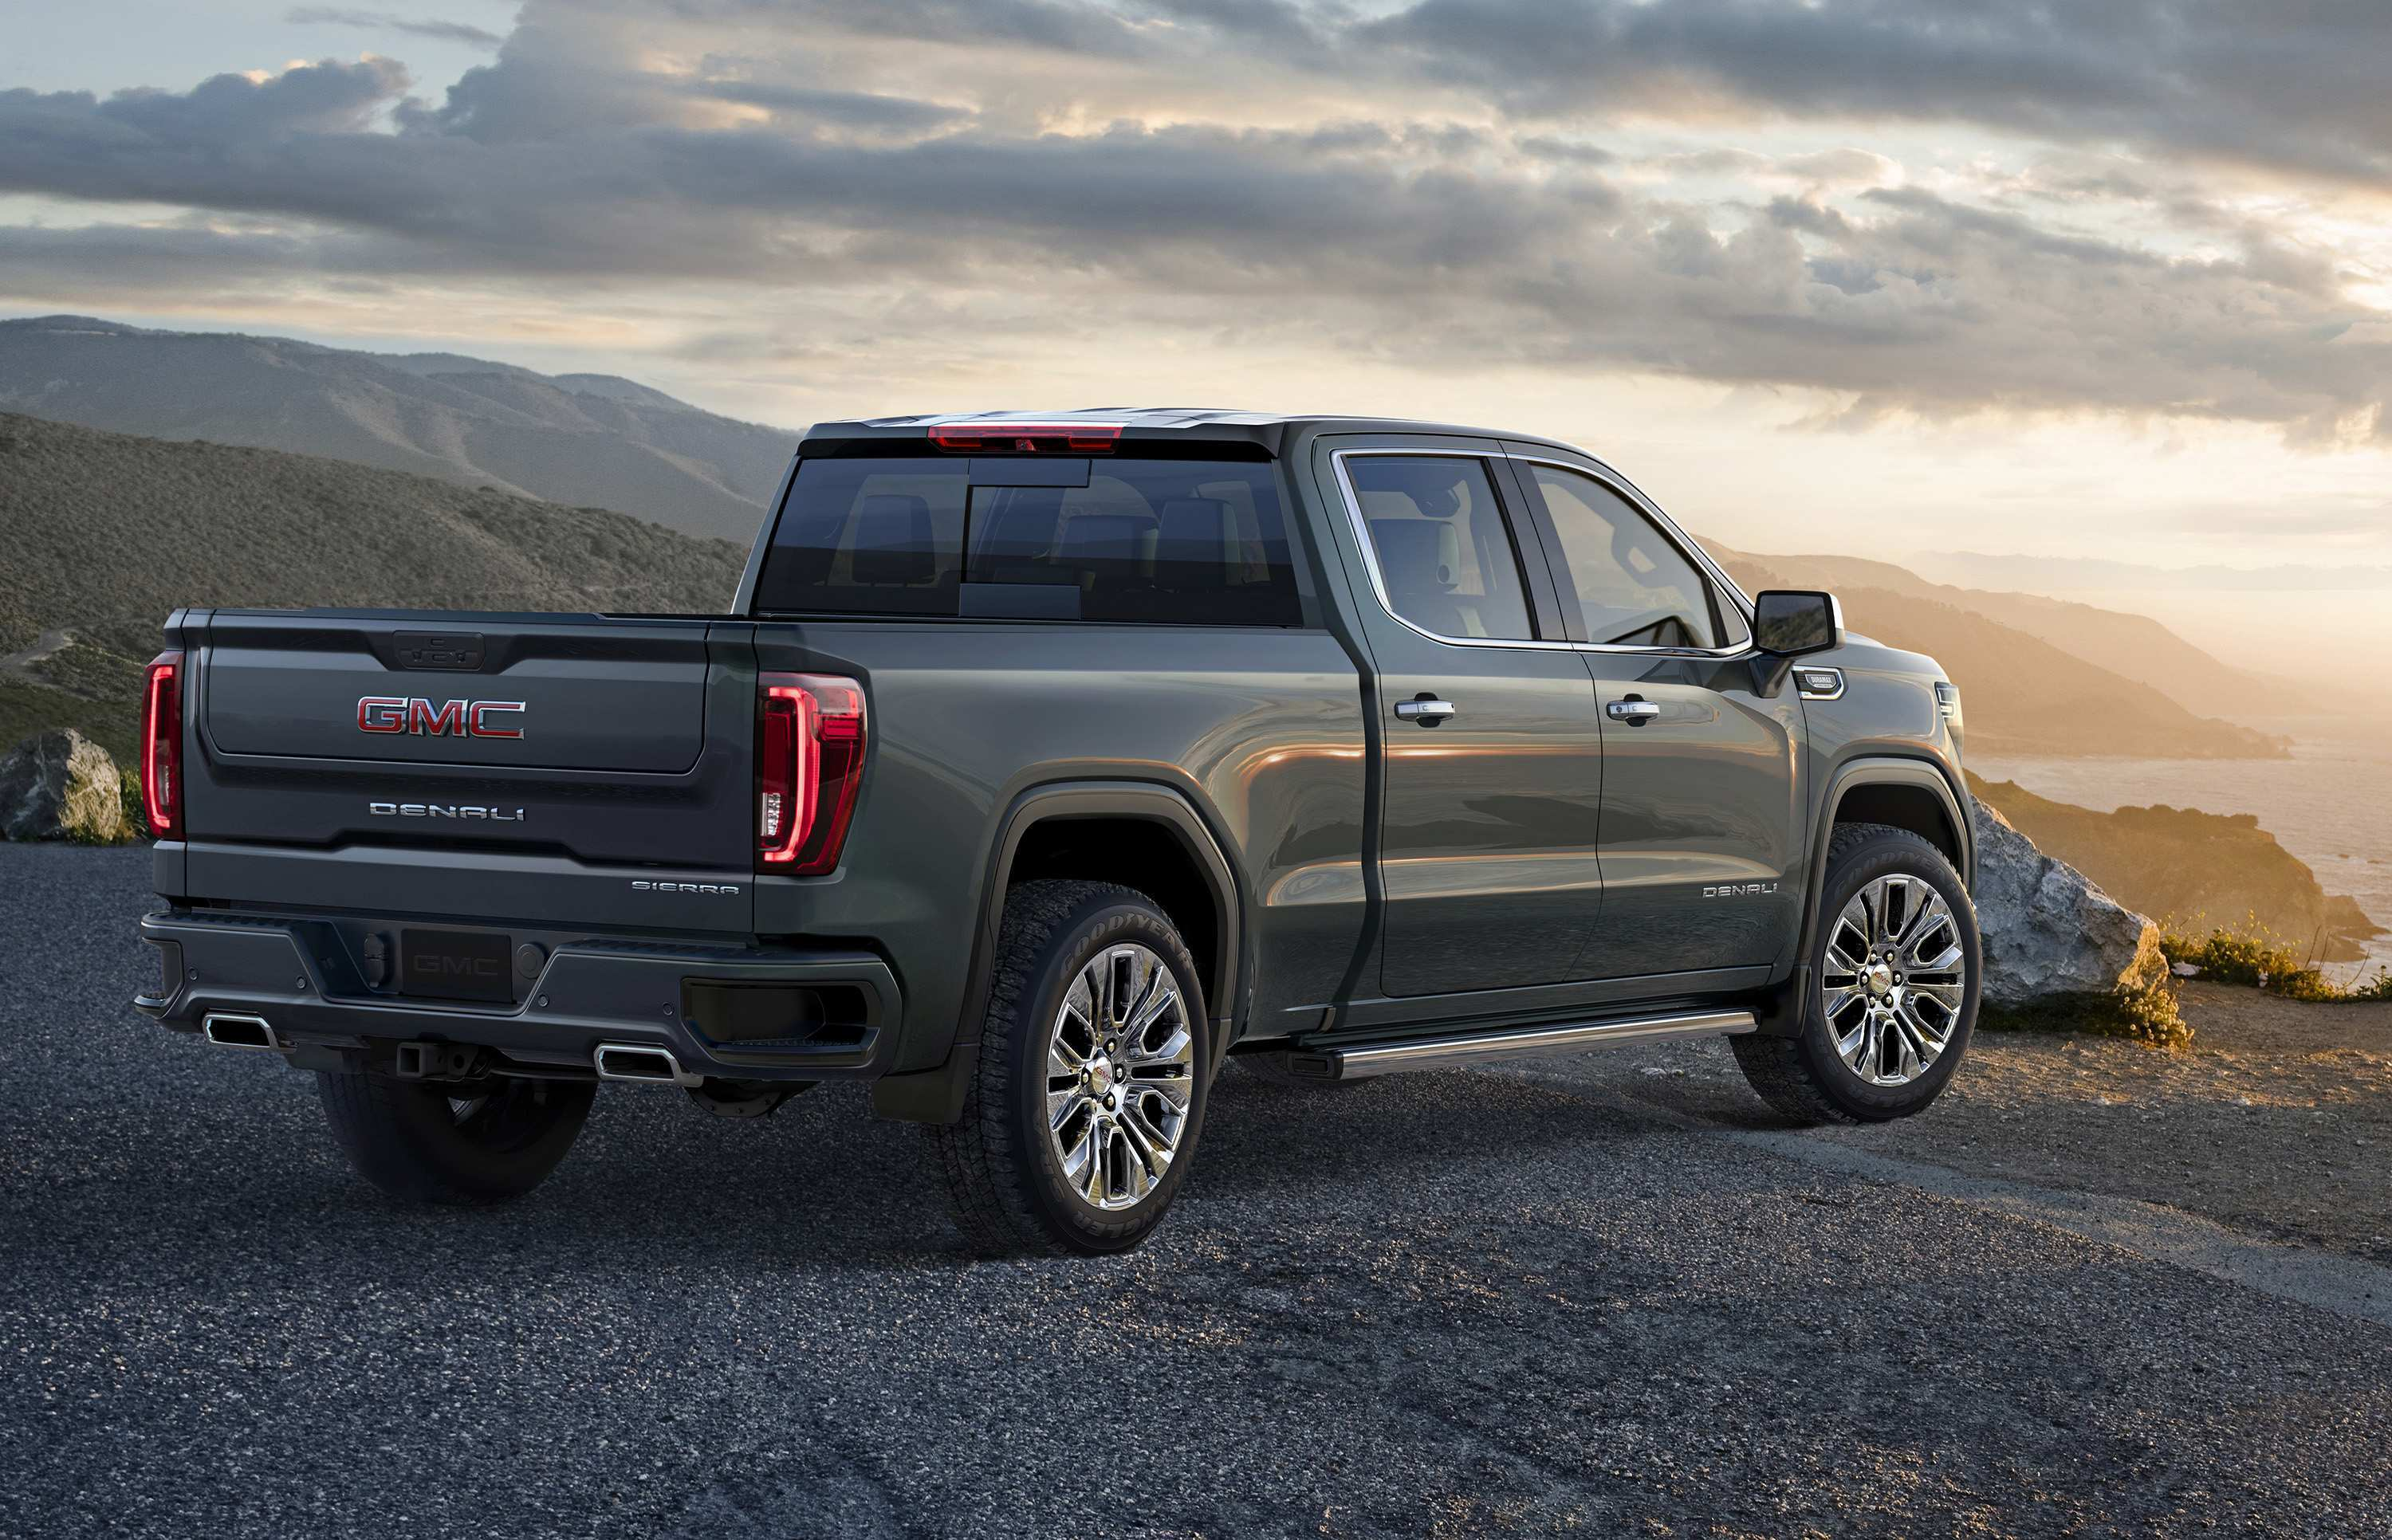 99 The Best 2020 GMC Sierra Tailgate Concept and Review